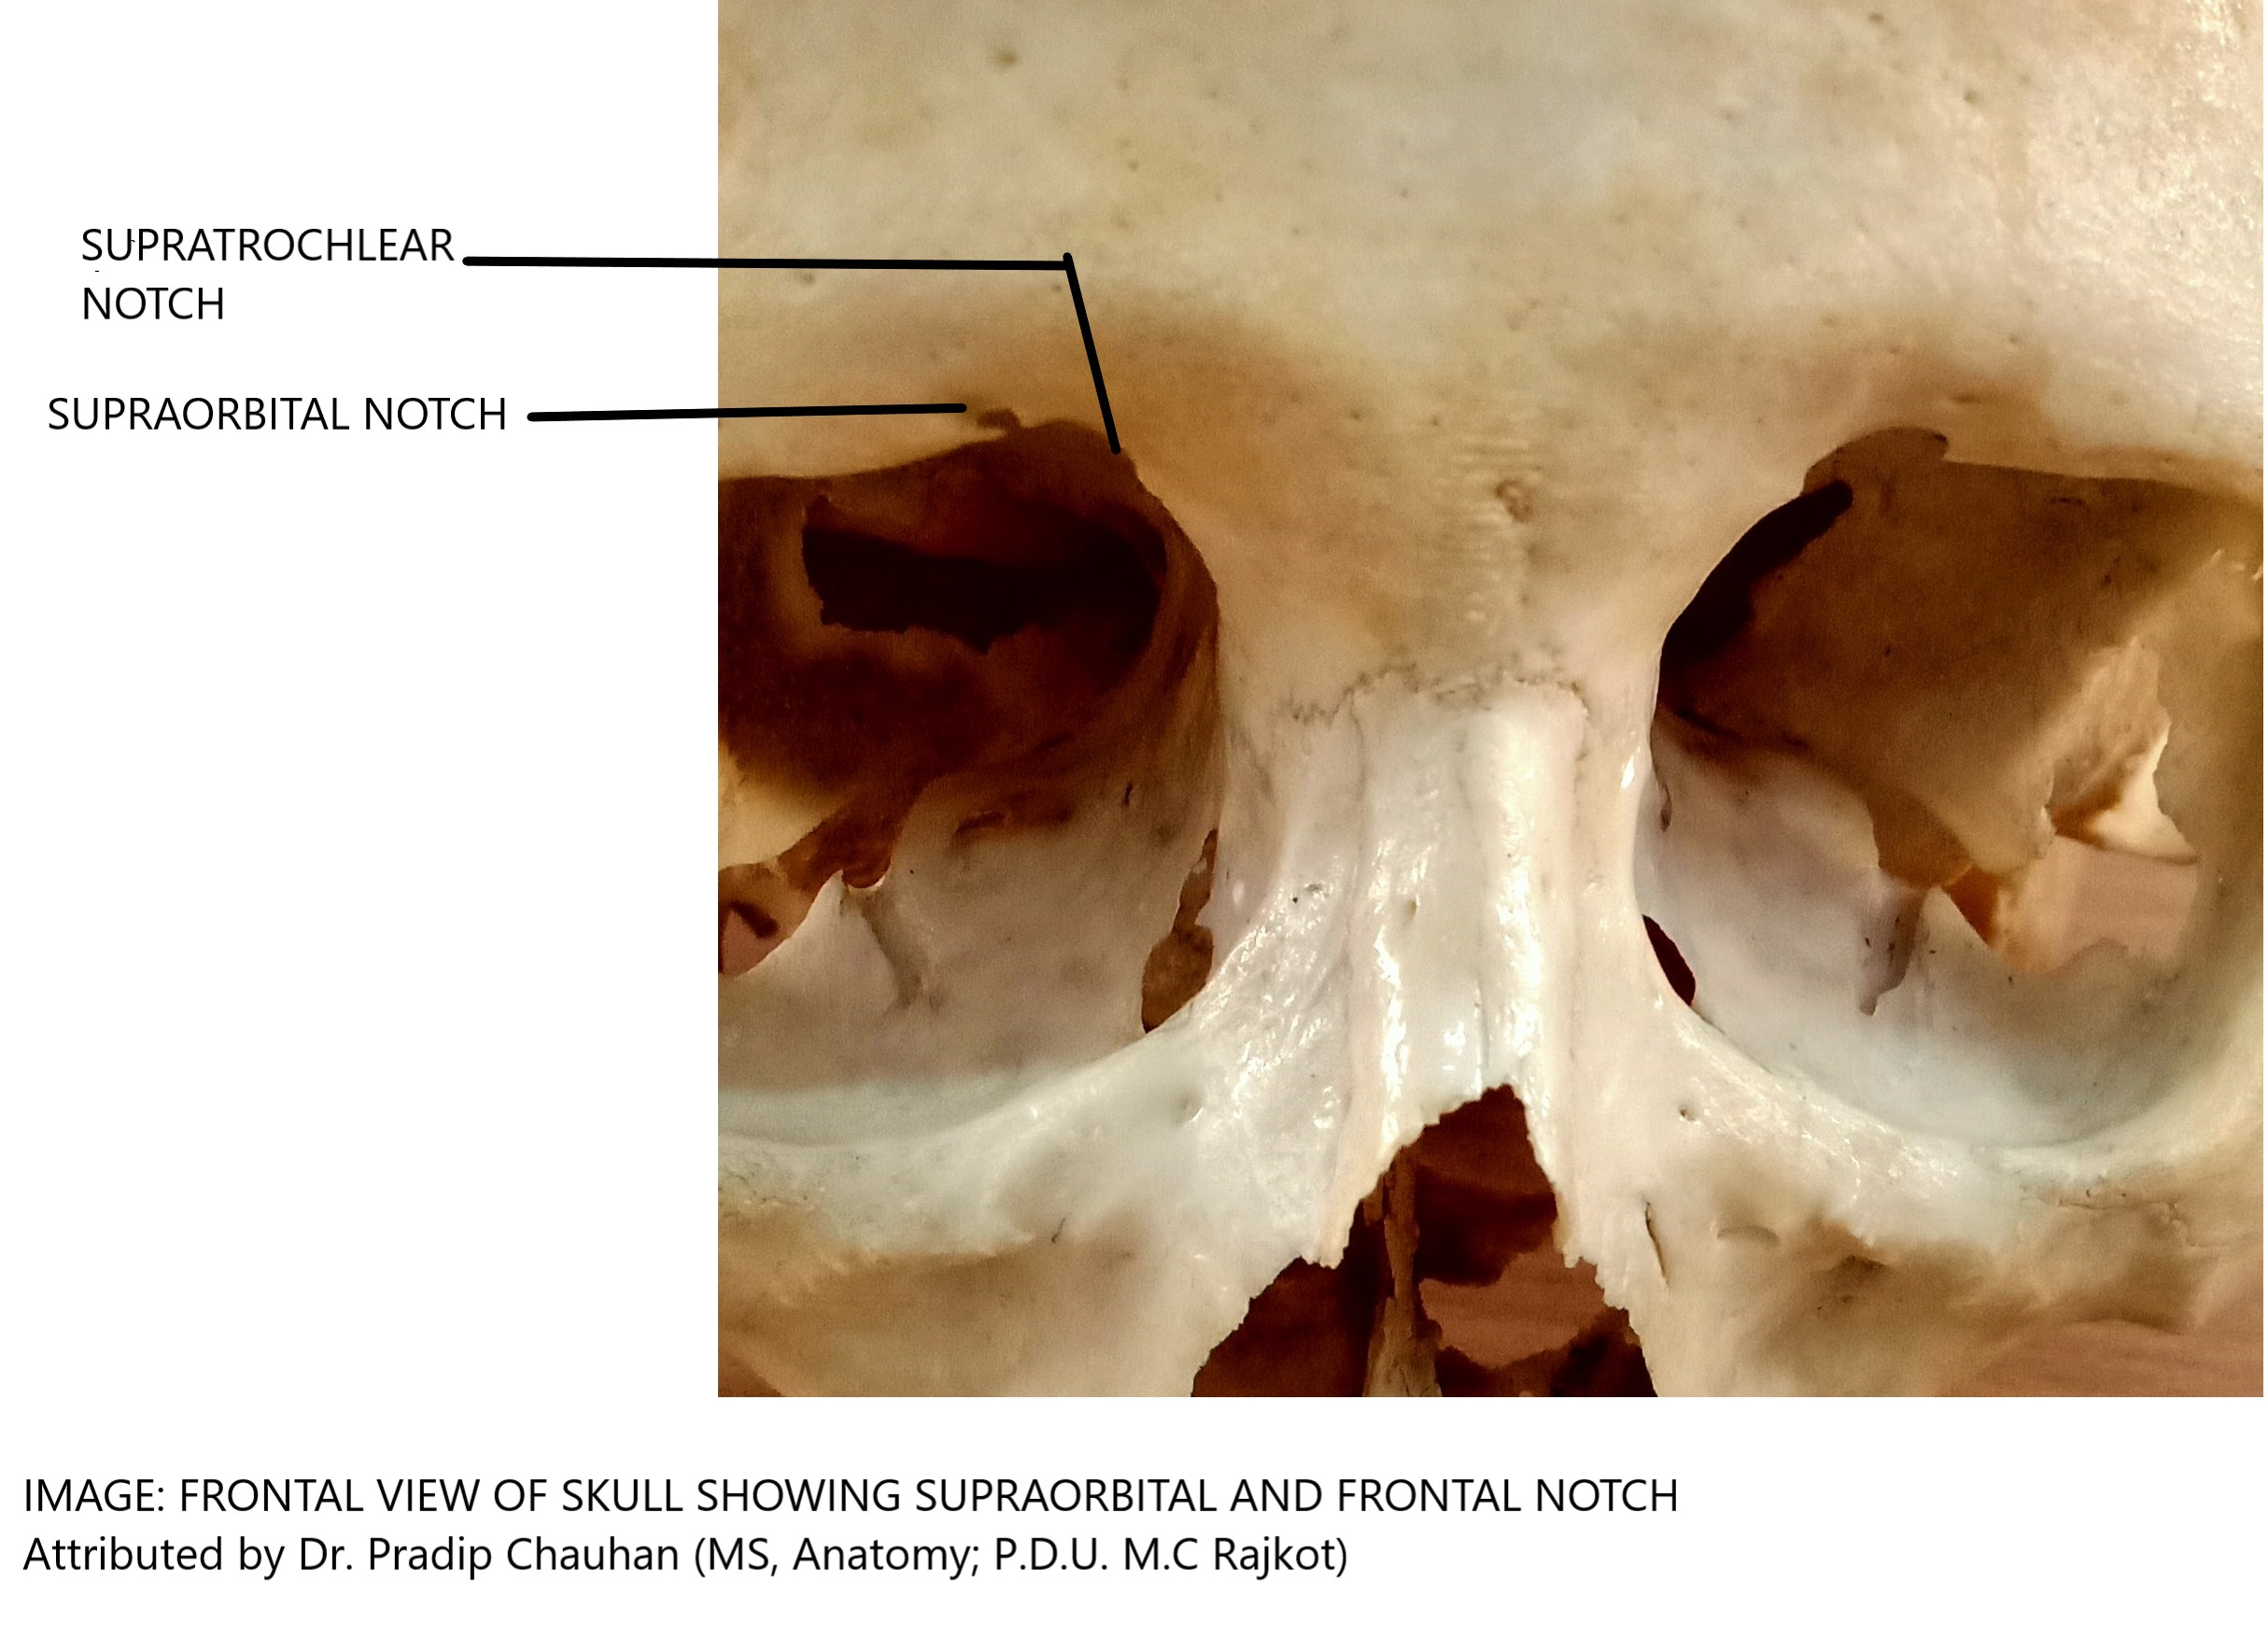 FRONTAL VIEW OF THE SKULL SHOWING SUPRATROCHLEAR AND SUPRAORBITAL NOTCH